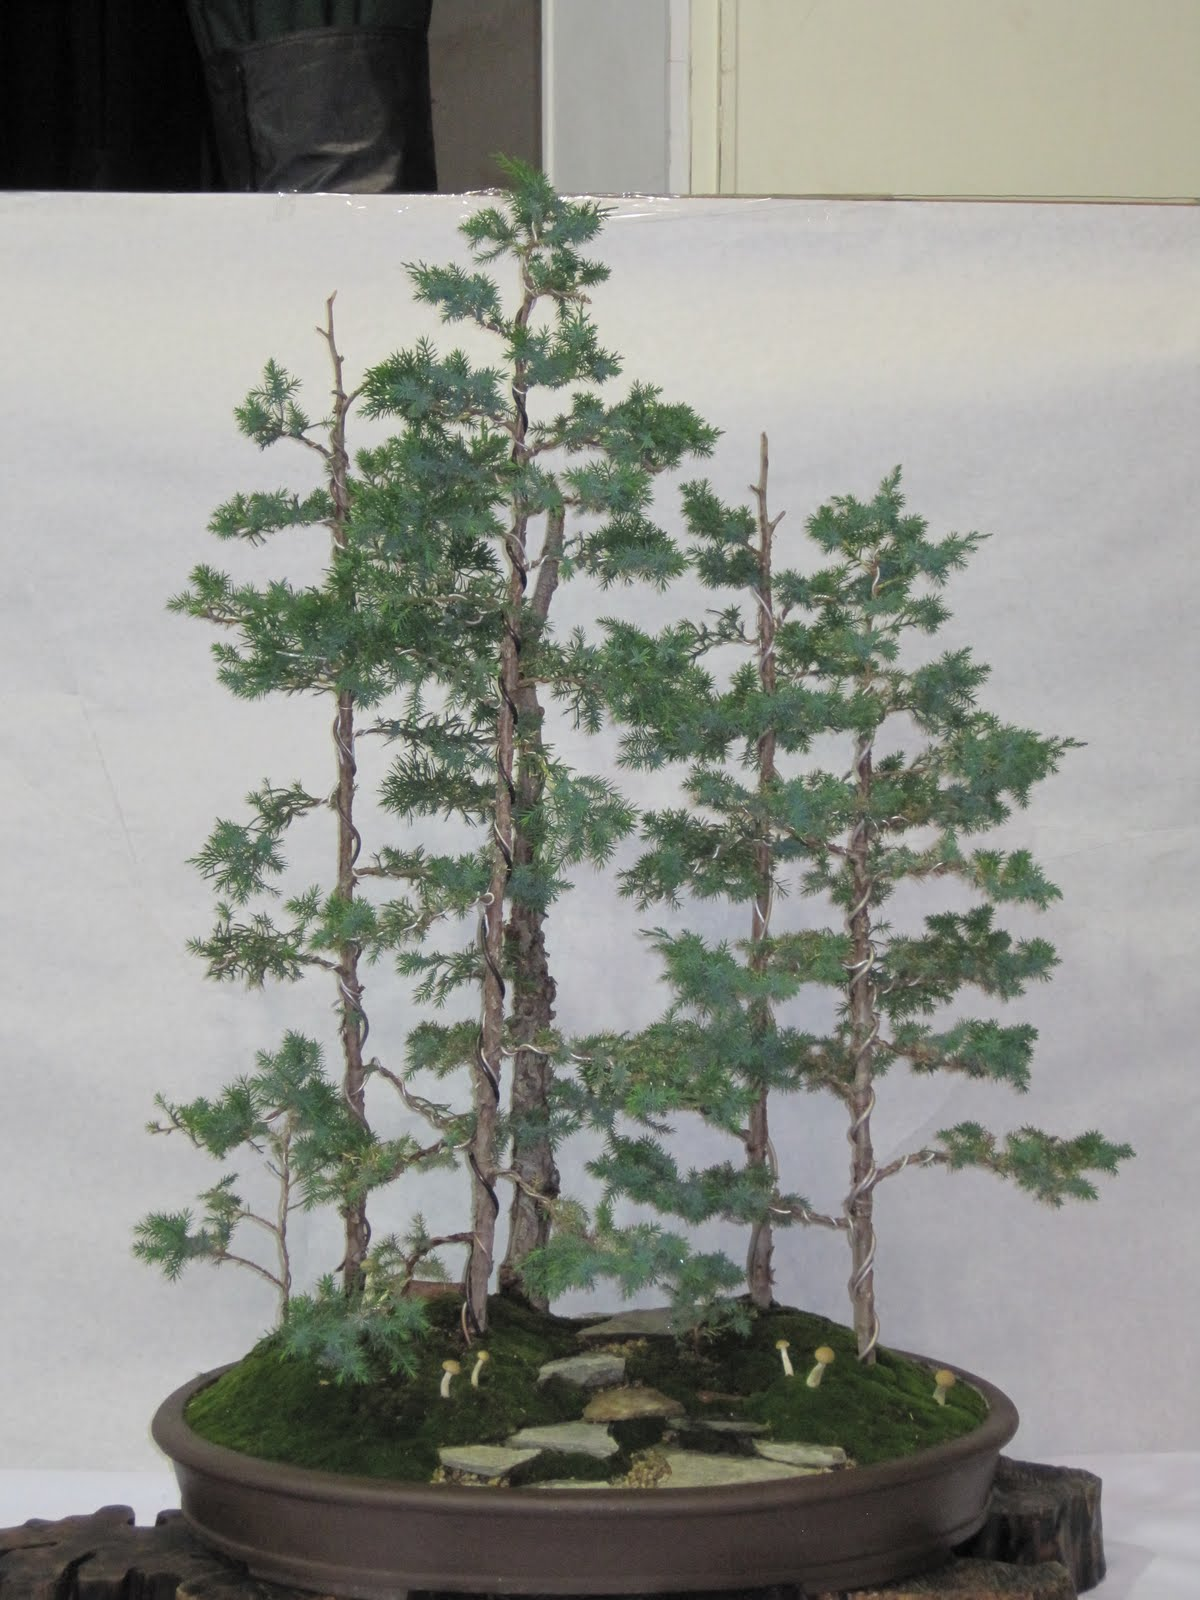 ShoChiku Bai Bonsai Club UPDATED BONSAI TREES FOR SALE As Of 05